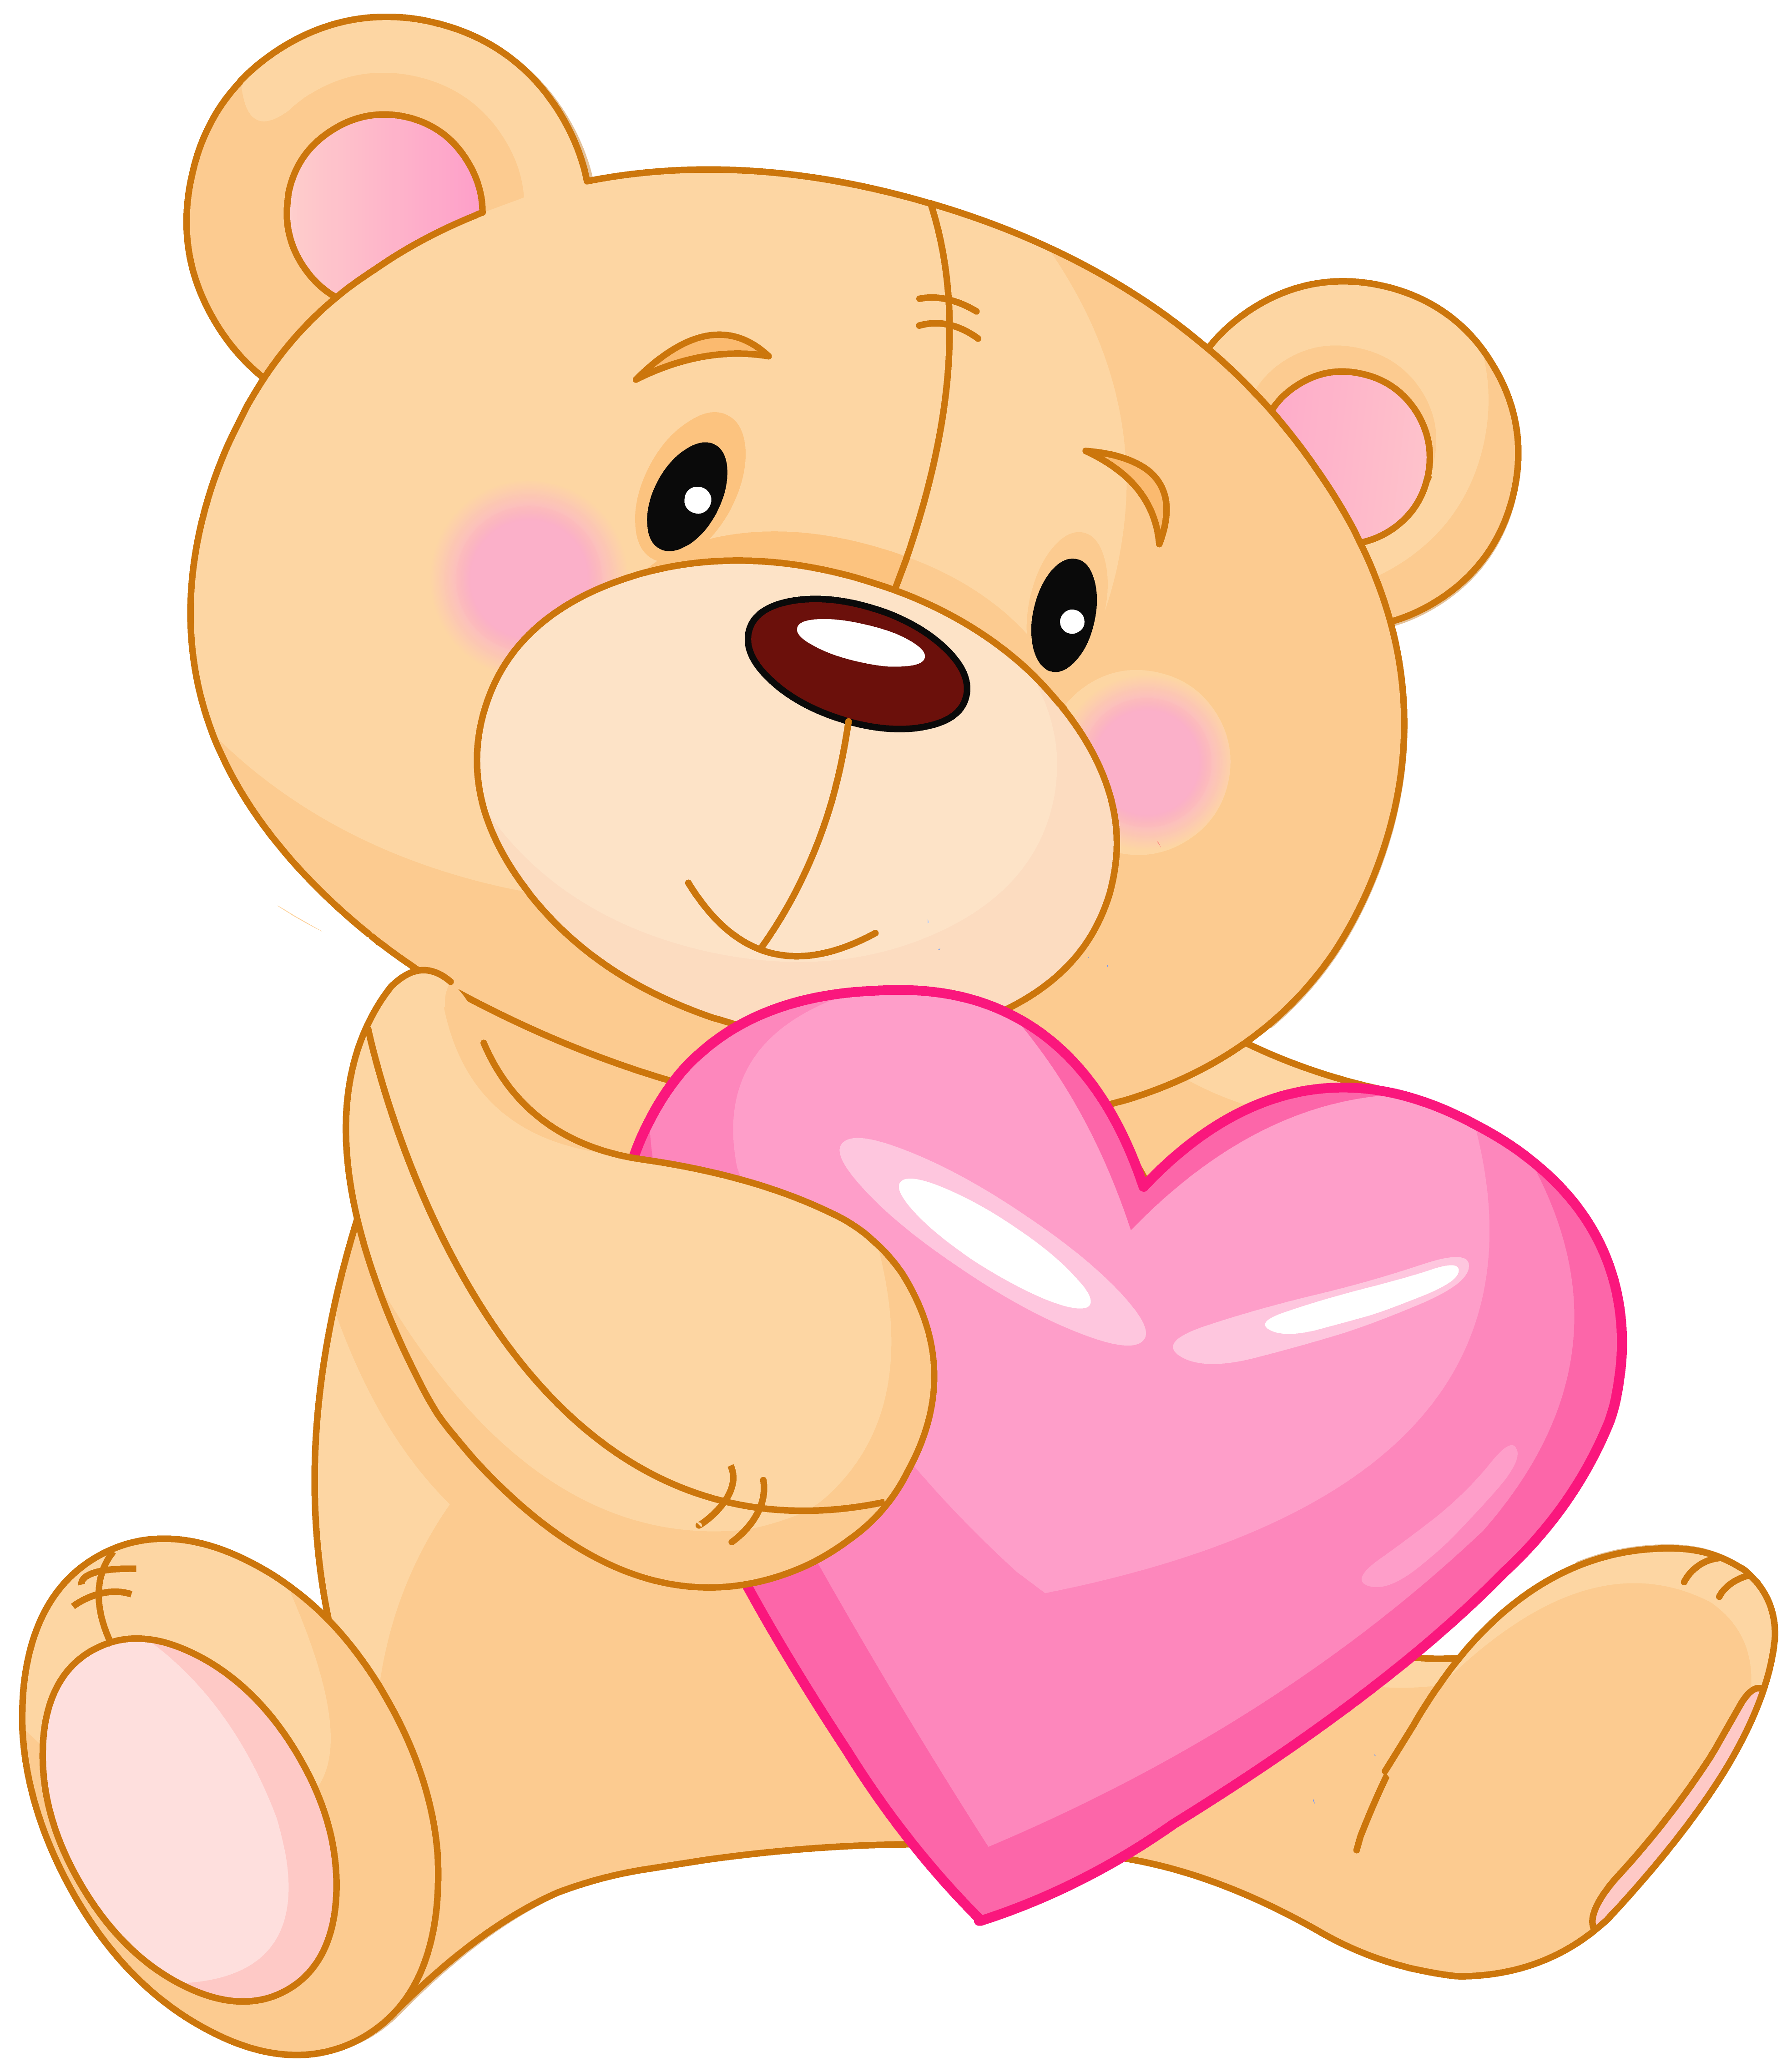 Transparent teddy with pink. Valentine clipart cute